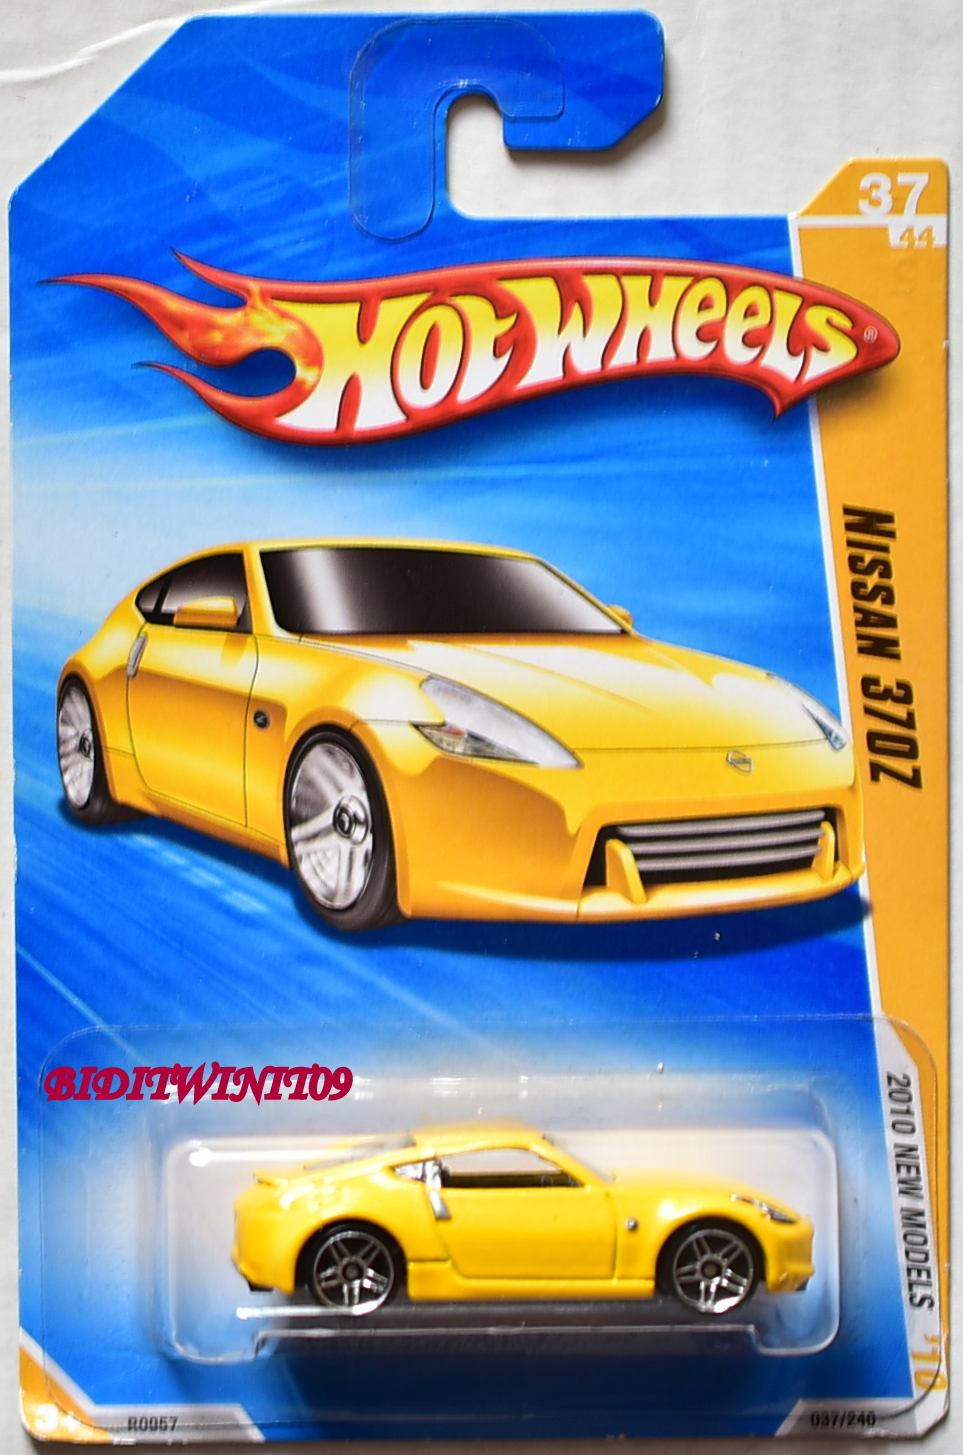 HOT WHEELS 2010 NEW MODELS NISSAN 370Z YELLOW